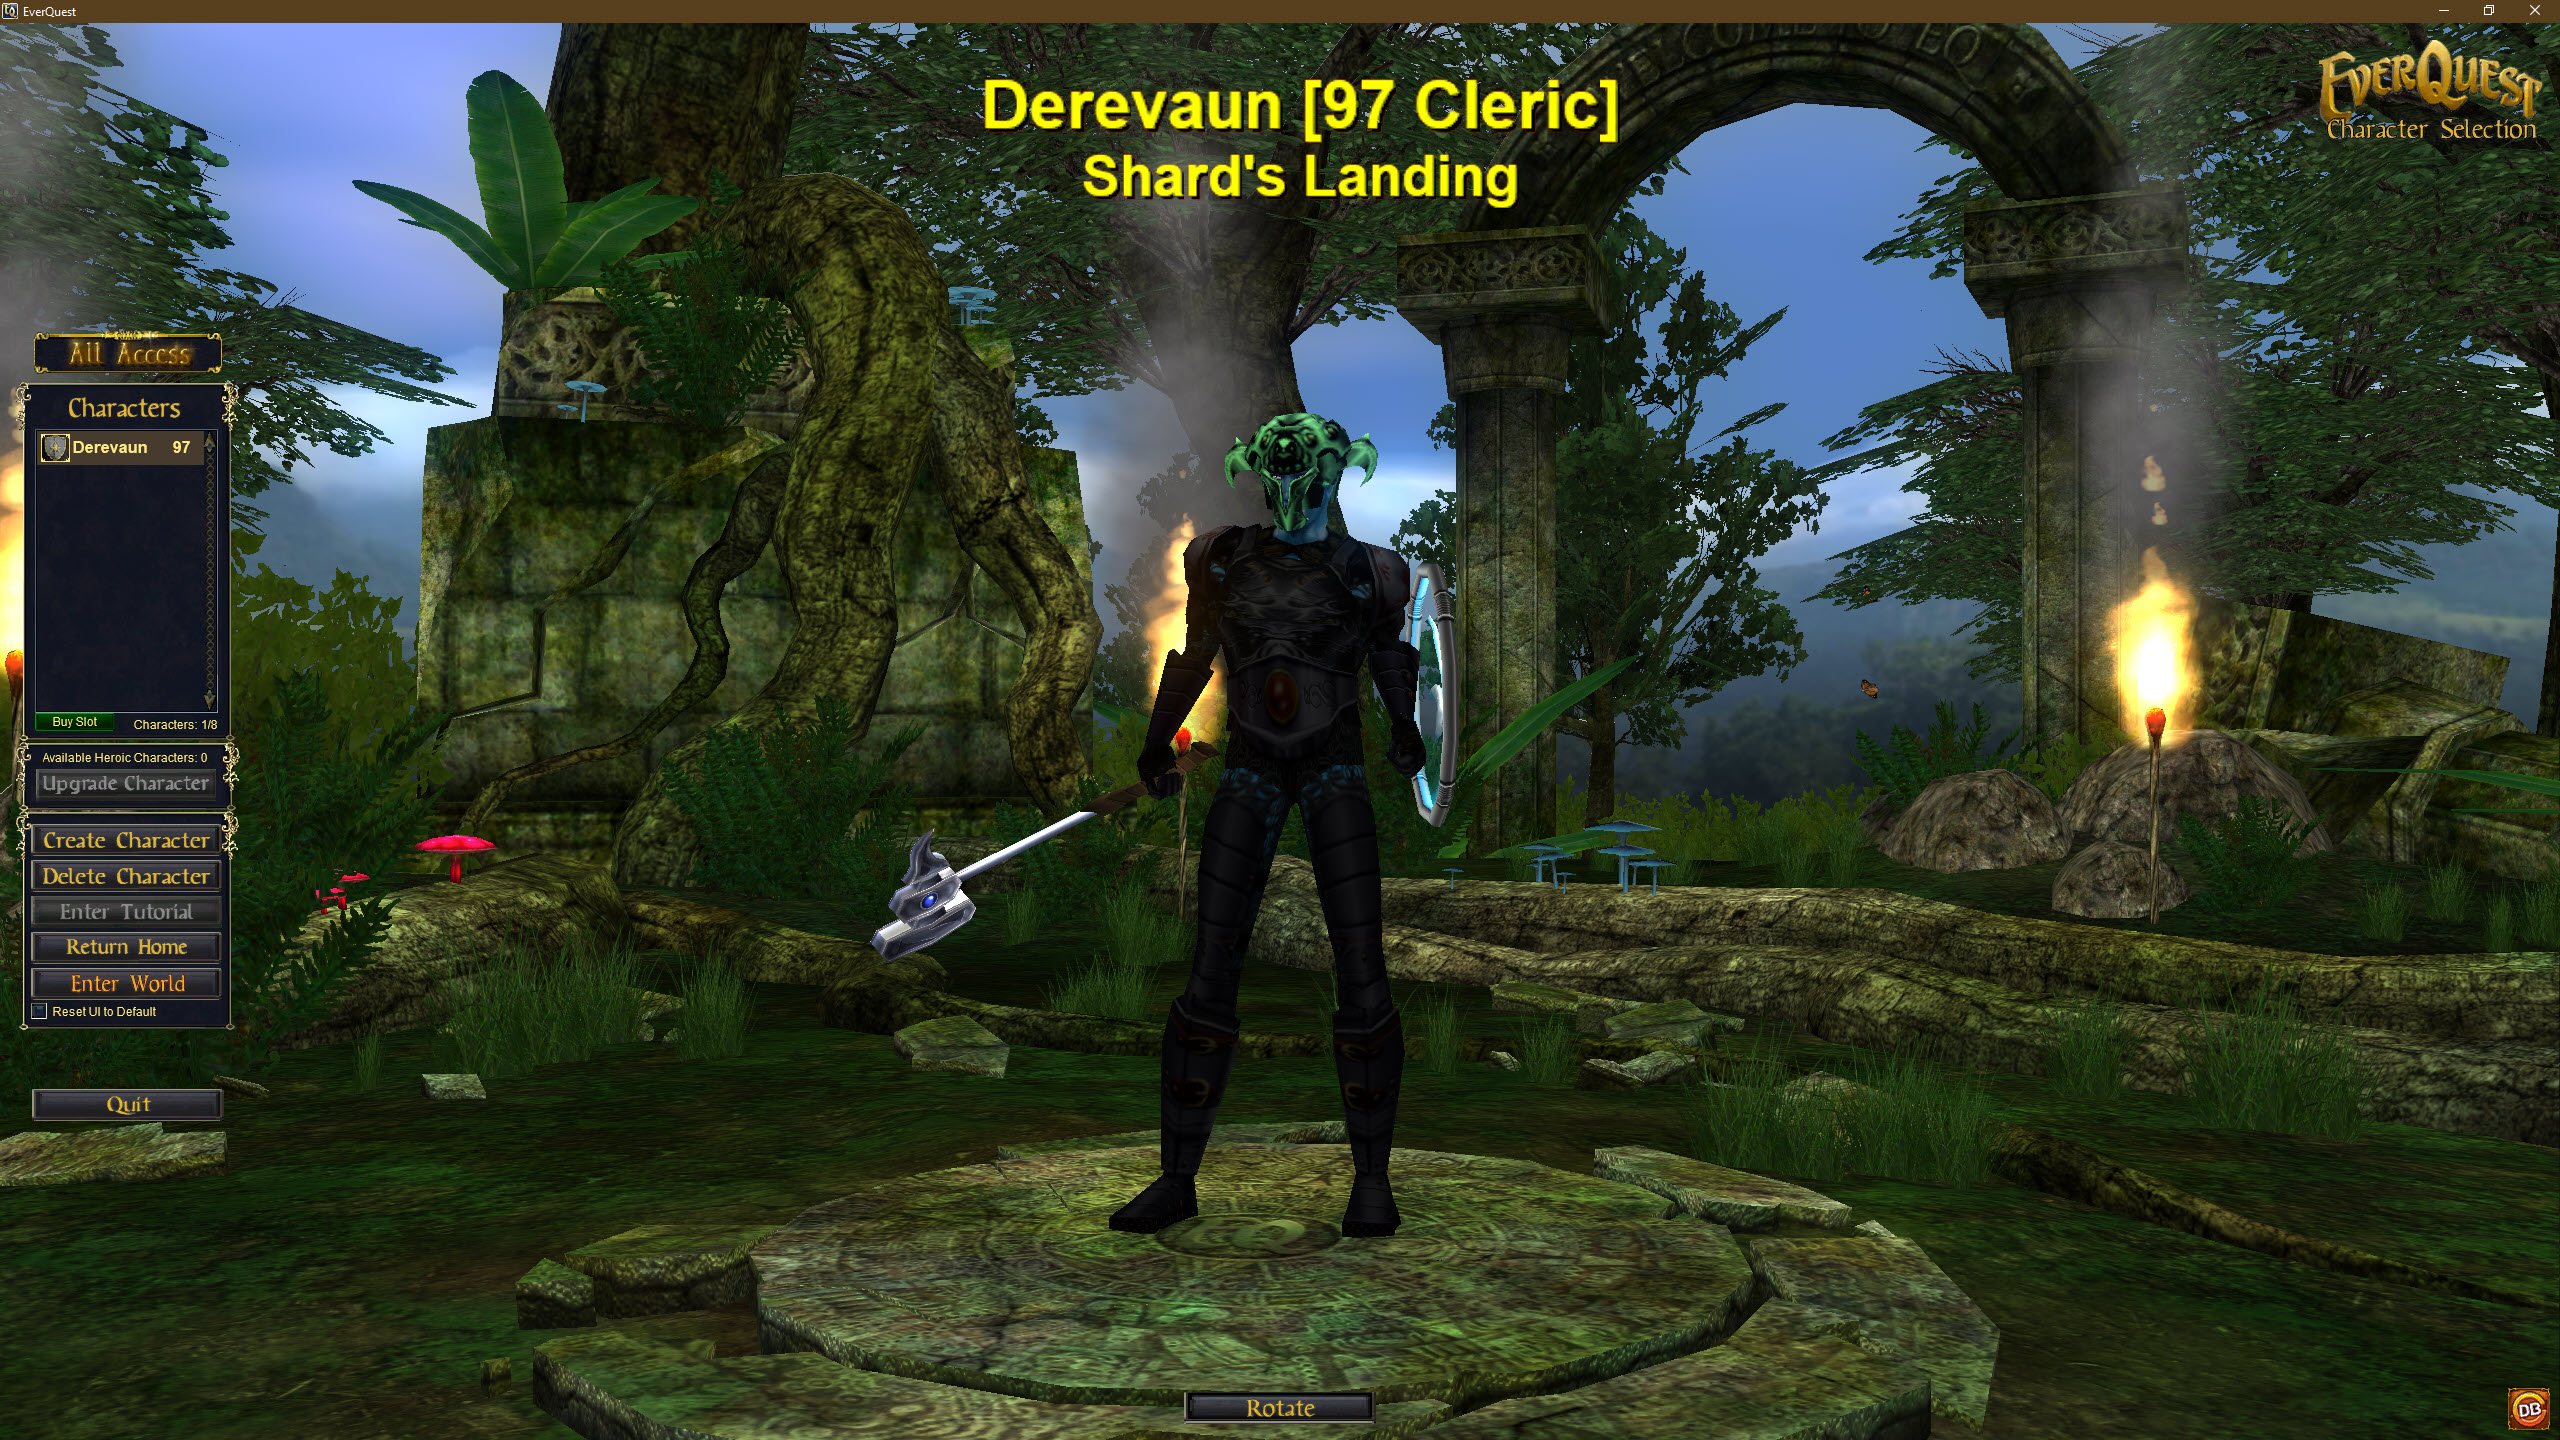 EverQuest | Ed's EverQuest Blog after a Six Year Hiatus